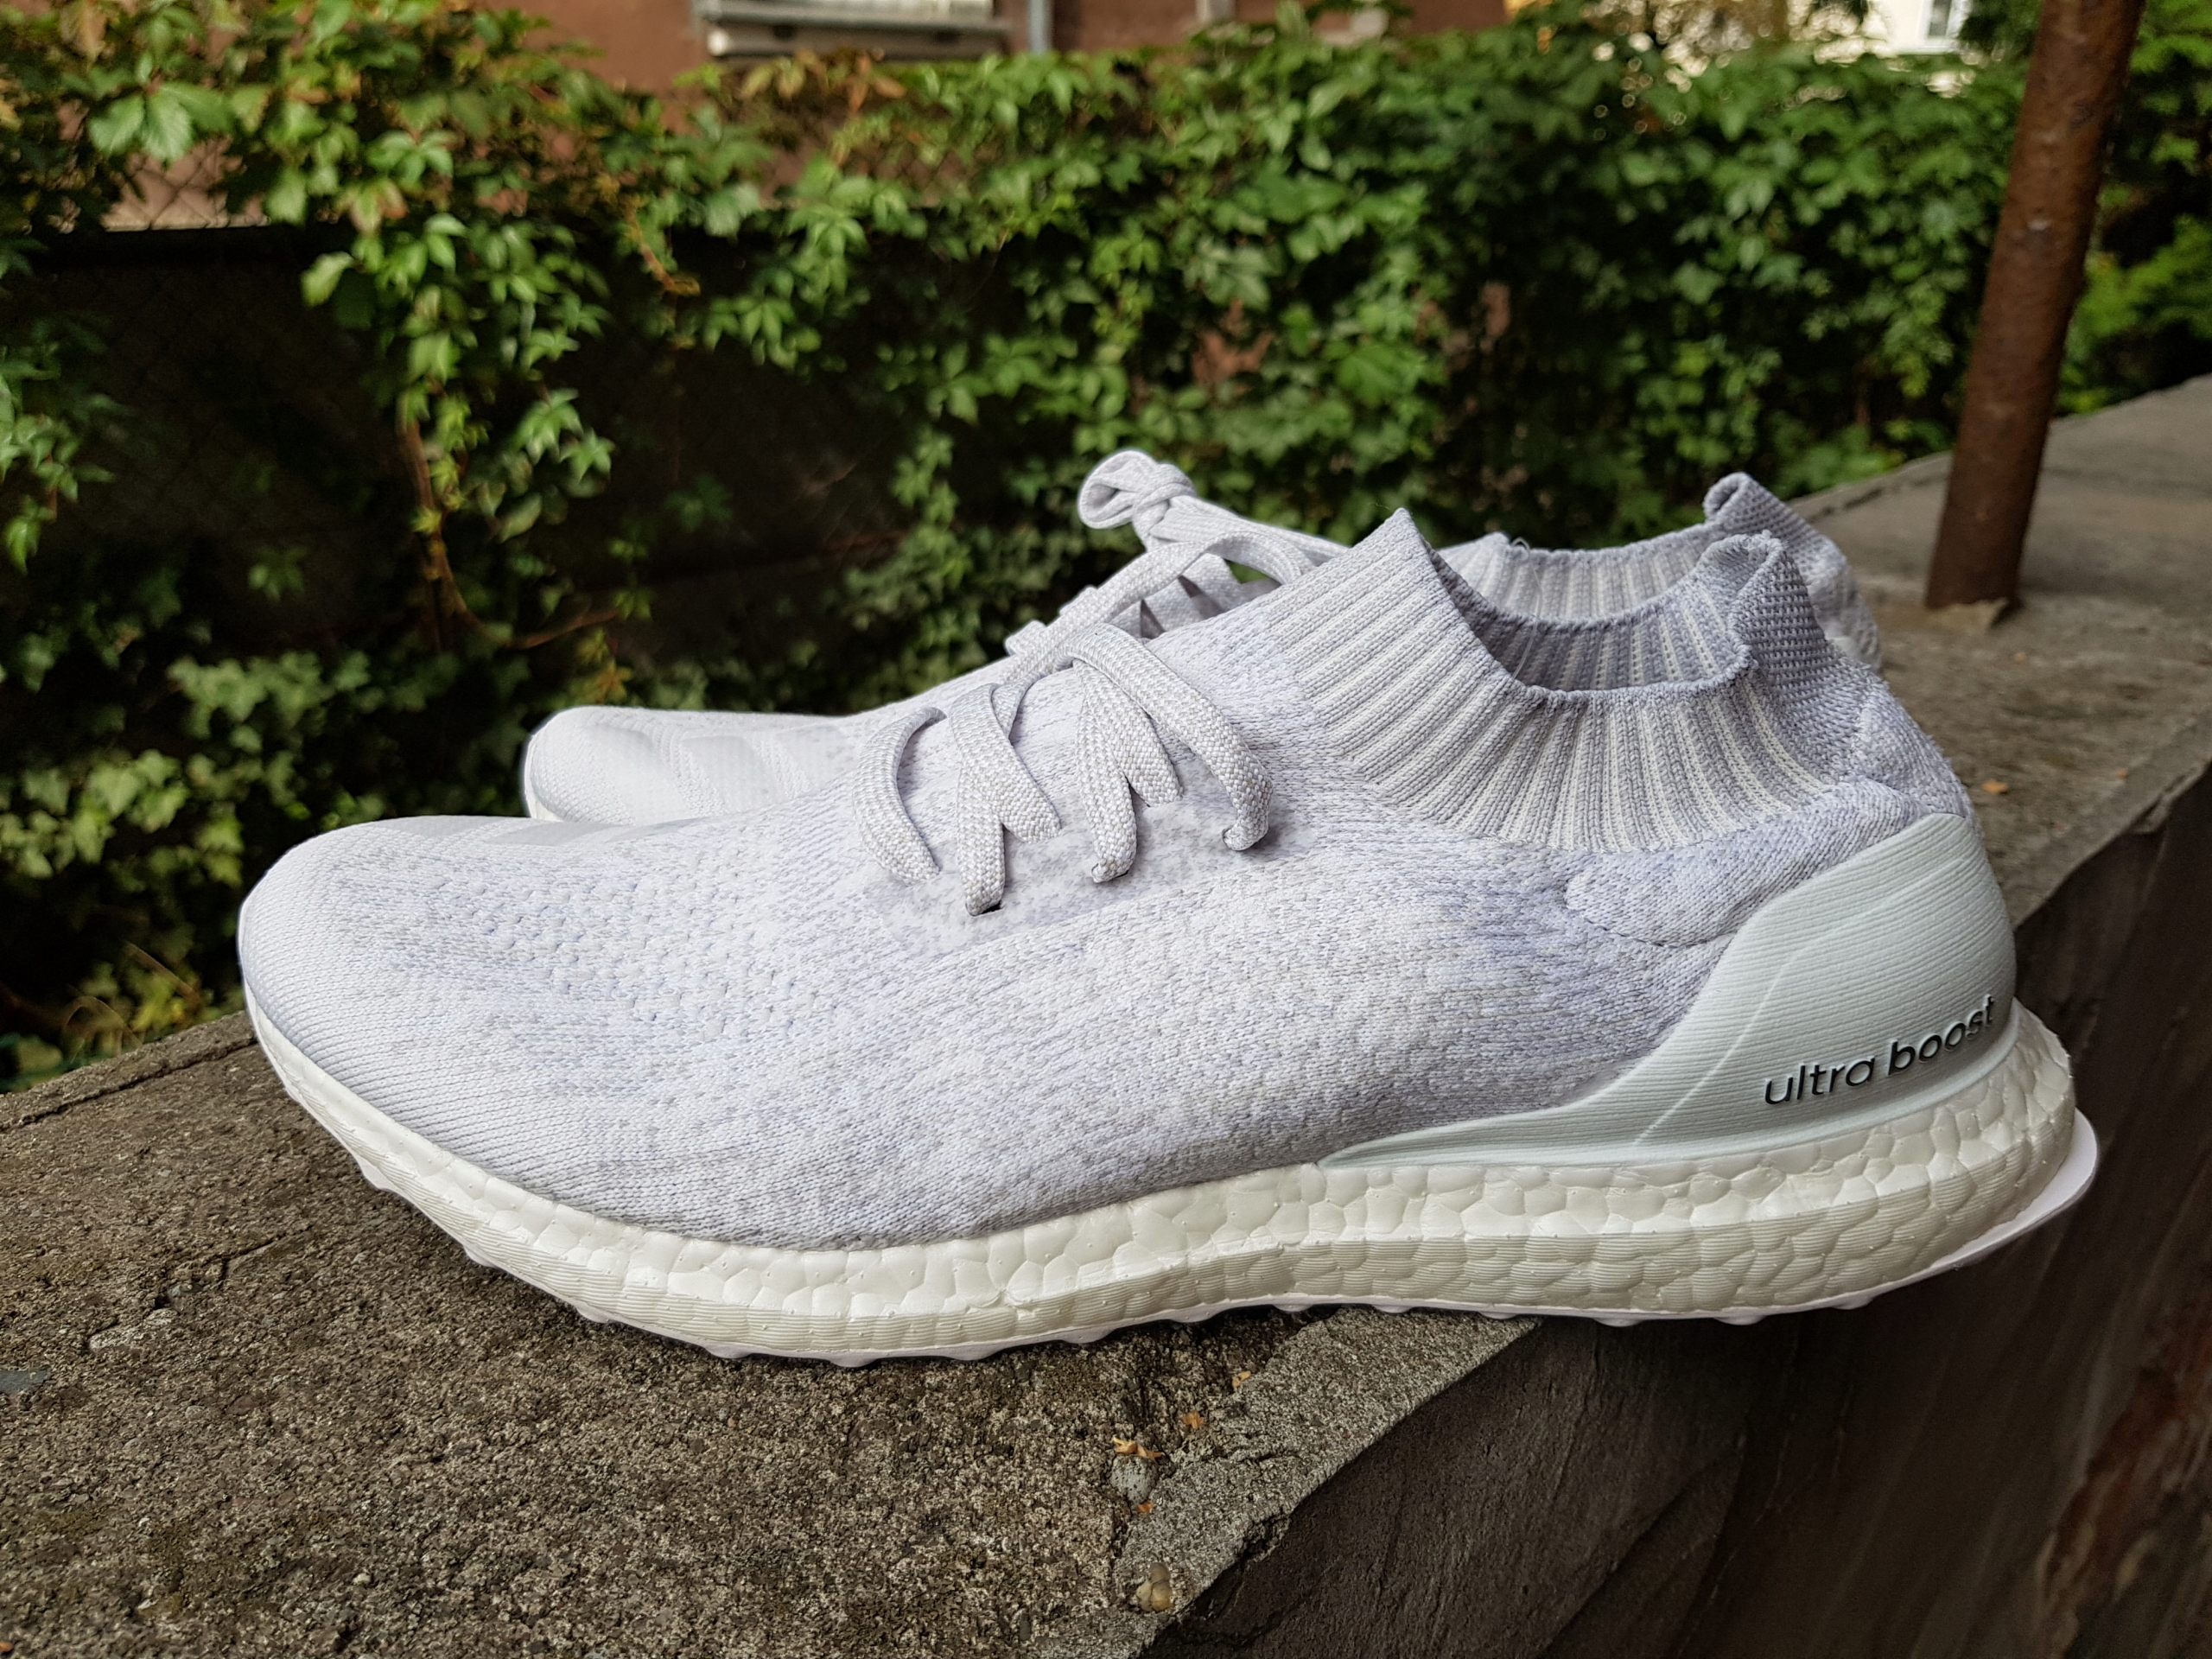 hot sales 56e73 c209c Nowe Buty Adidas Ultra Boost Uncaged 44 28cm. nmd